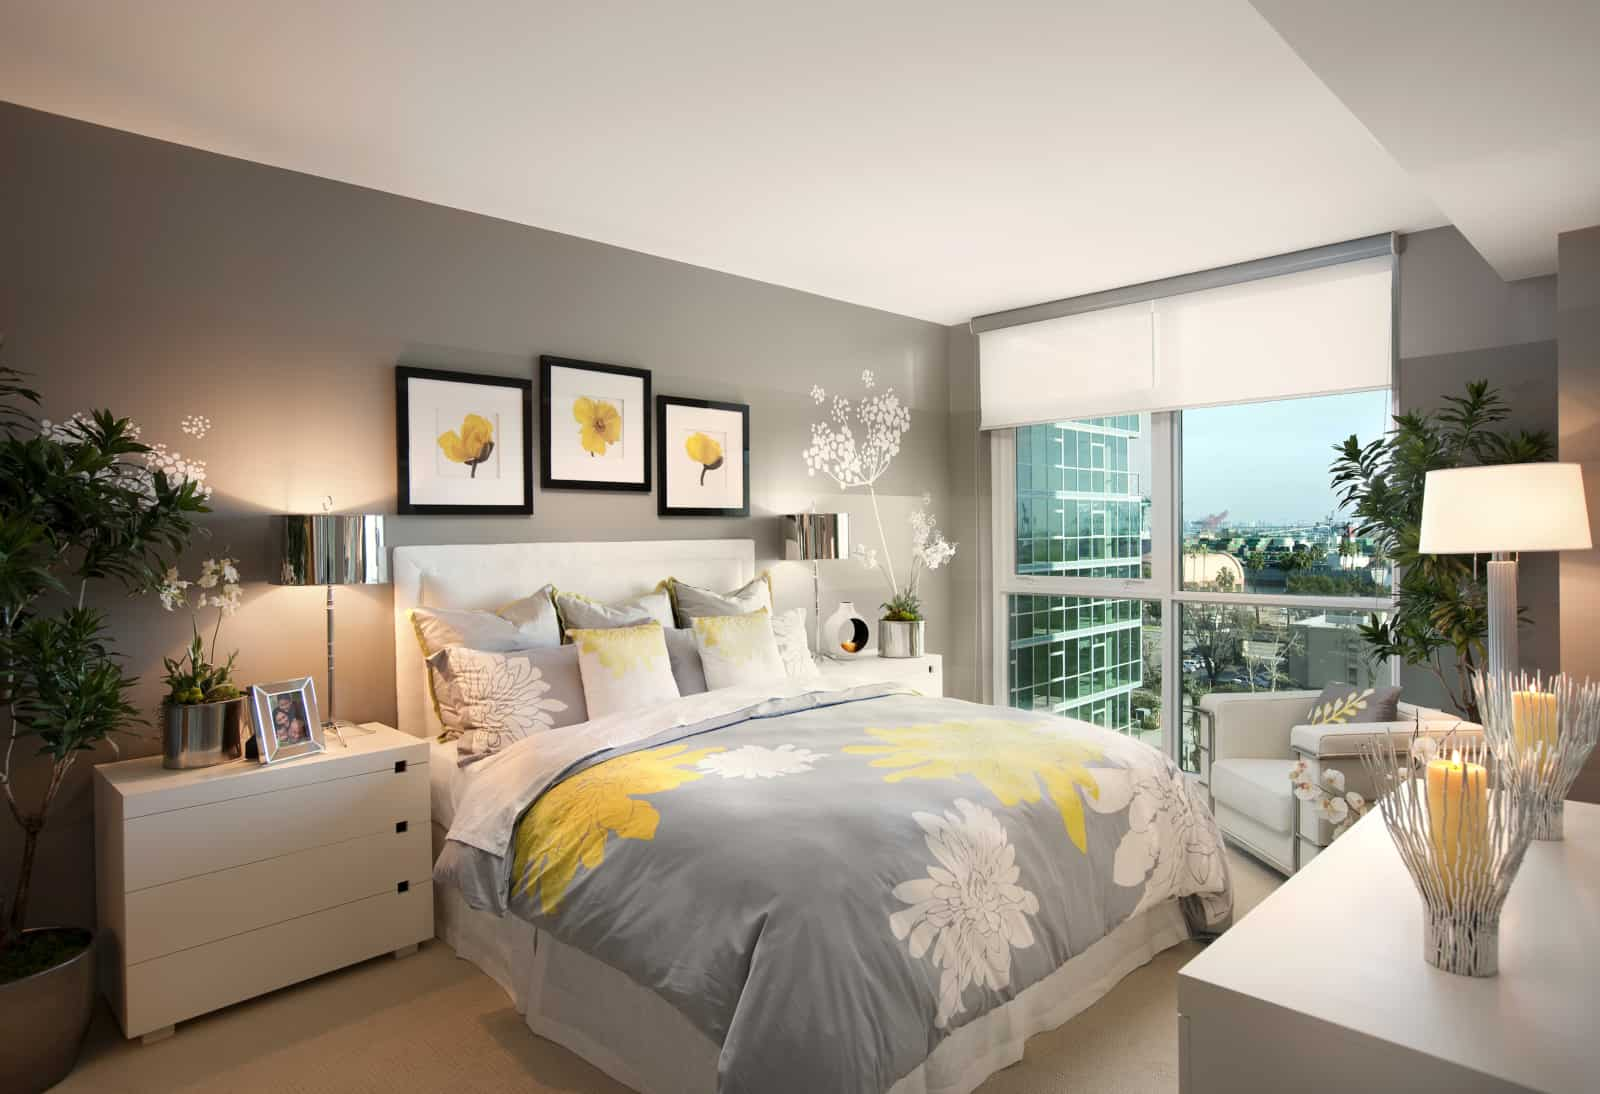 Interior of modern bedroom in a high-rise apartment.